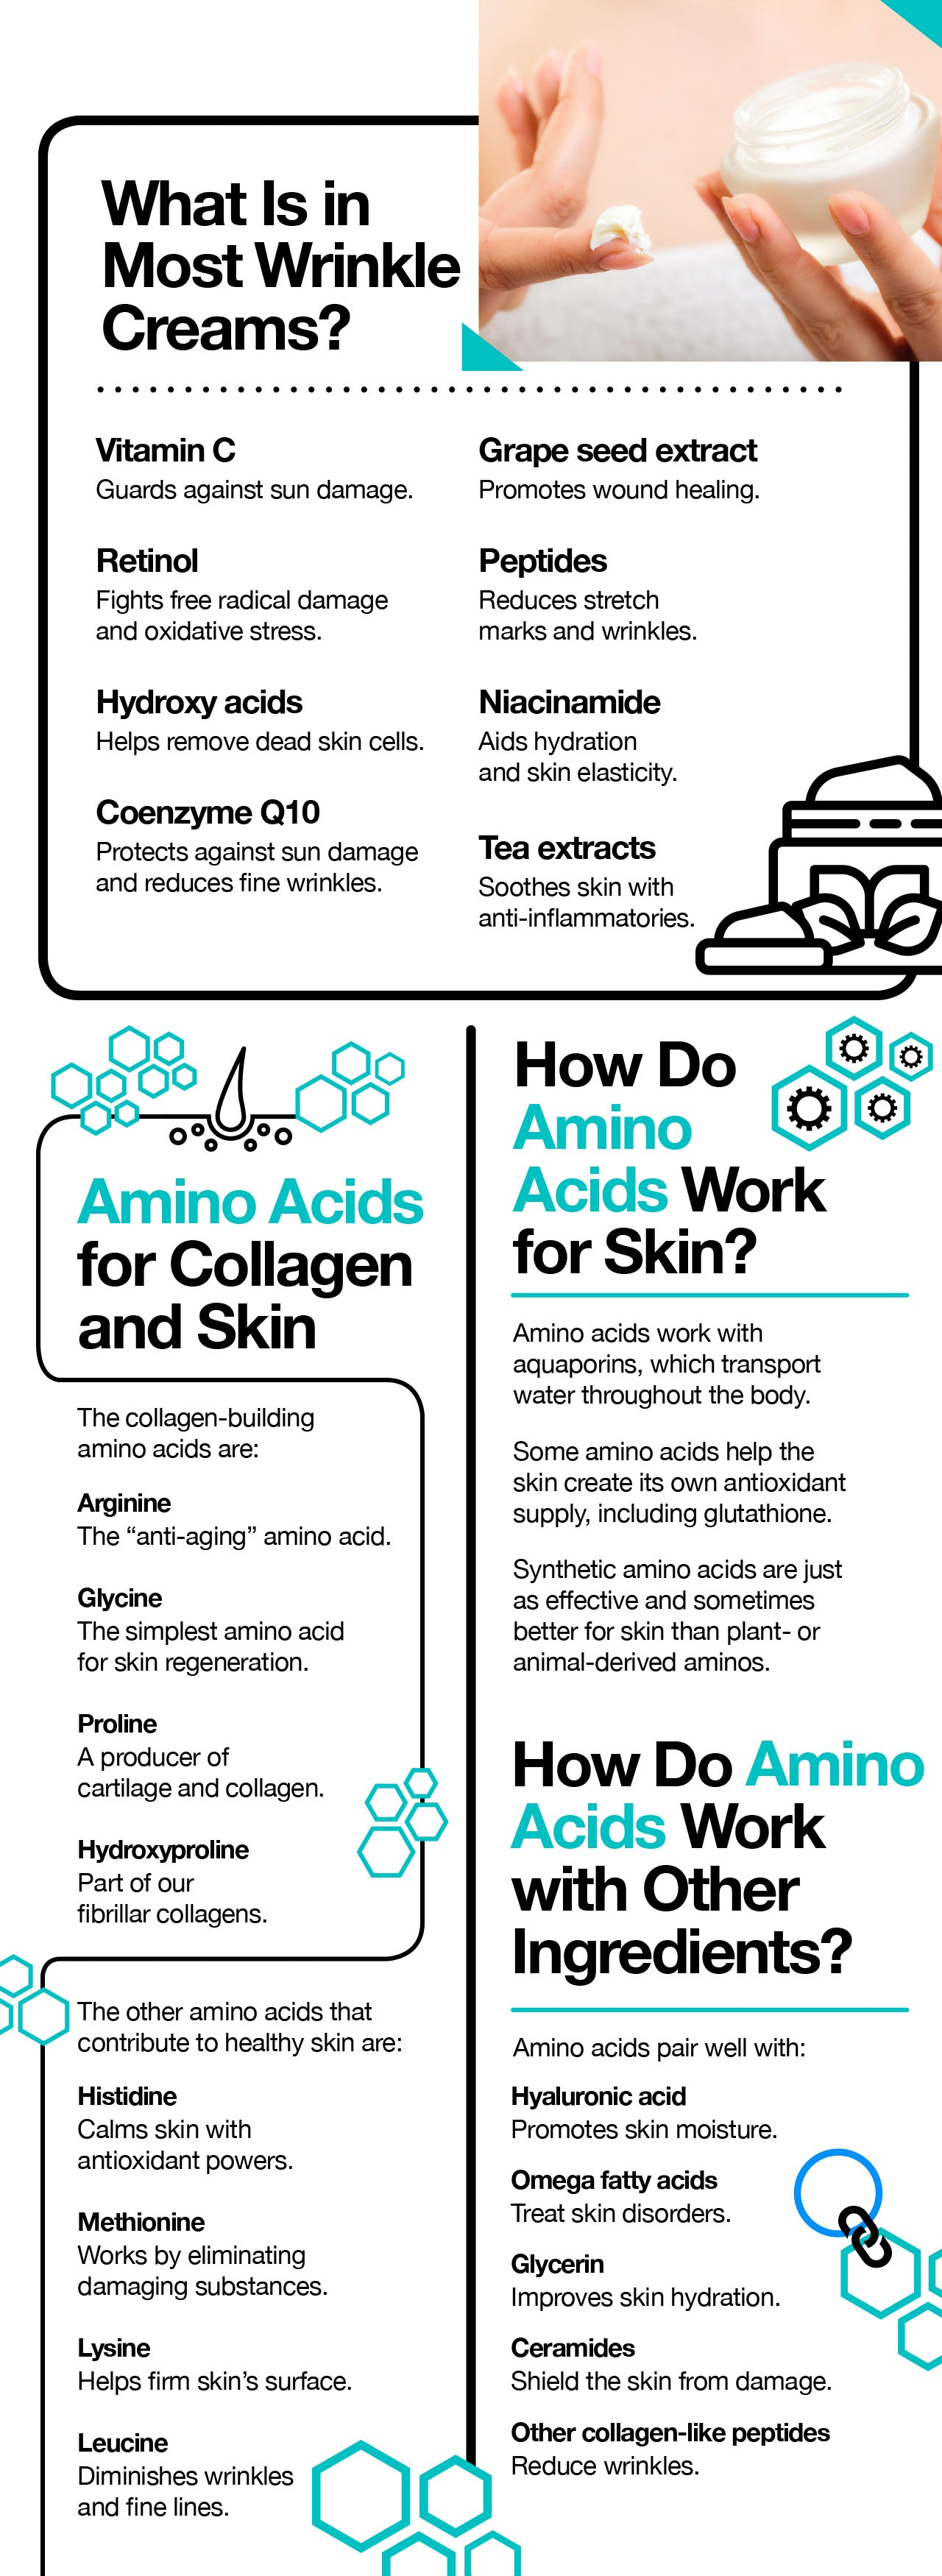 Amino acids for skin tightening and anti aging.